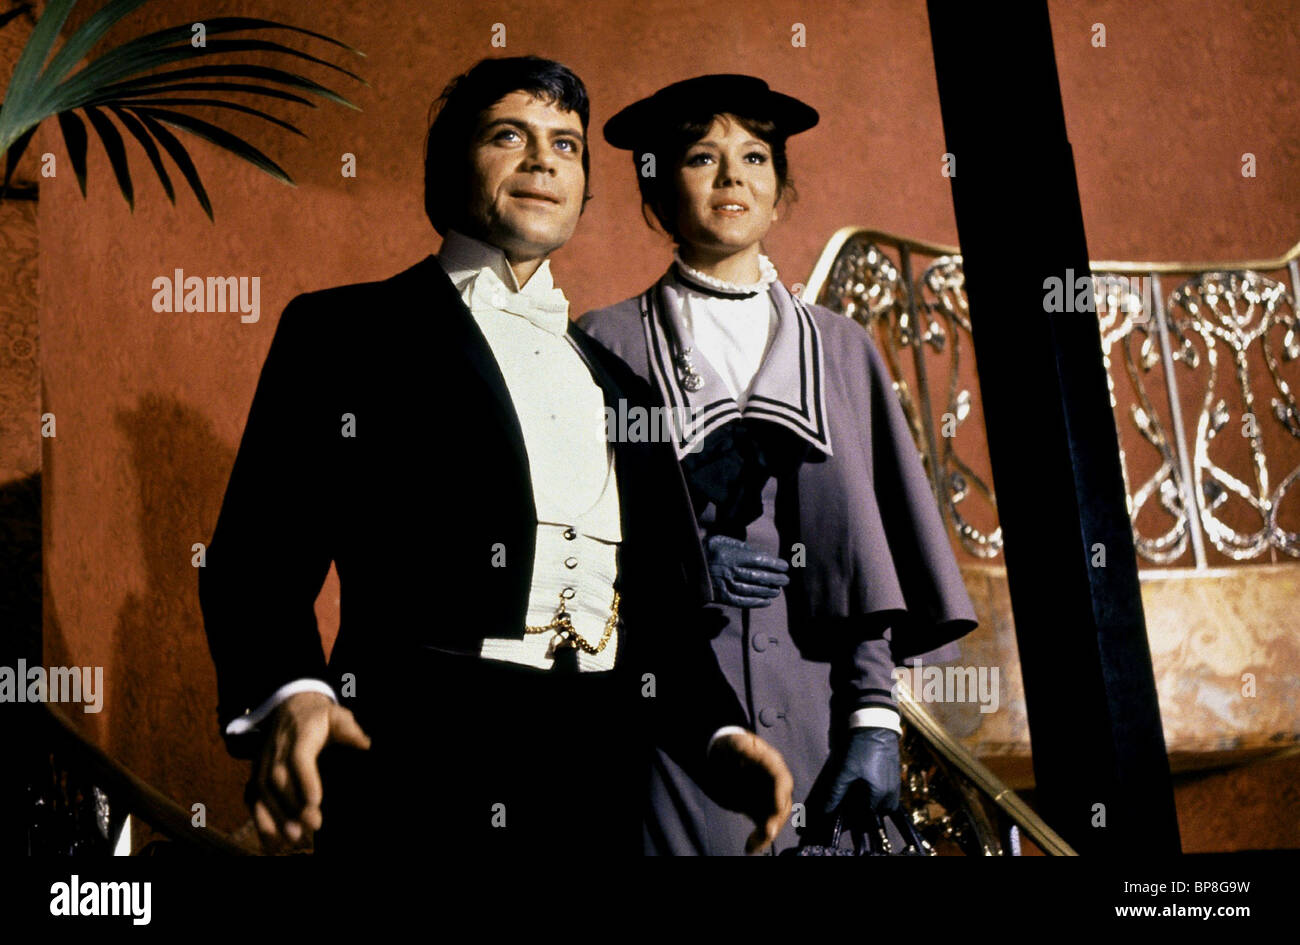 oliver reed diana rigg the assassination bureau 1969 stock photo royalty free image. Black Bedroom Furniture Sets. Home Design Ideas